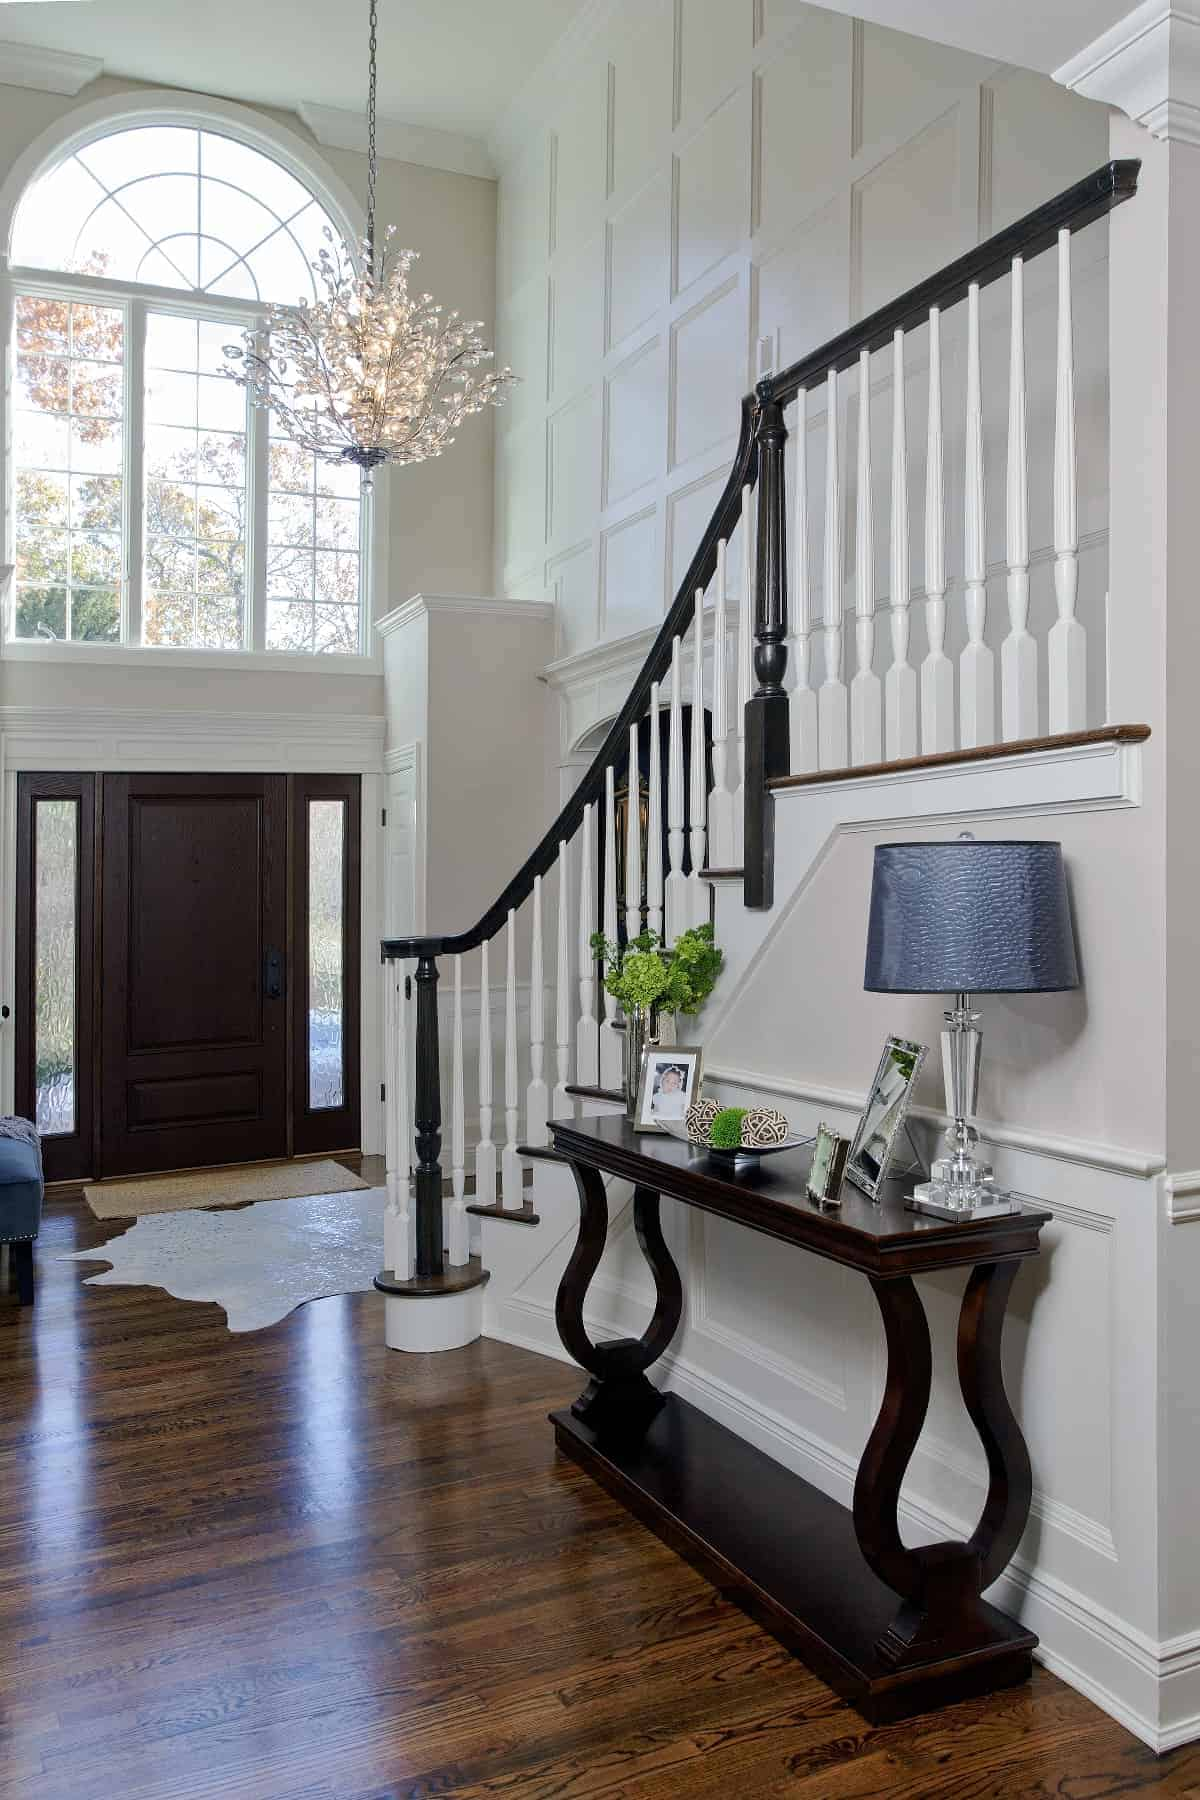 Entrance Foyer Plans : Entry foyer interiors by just design